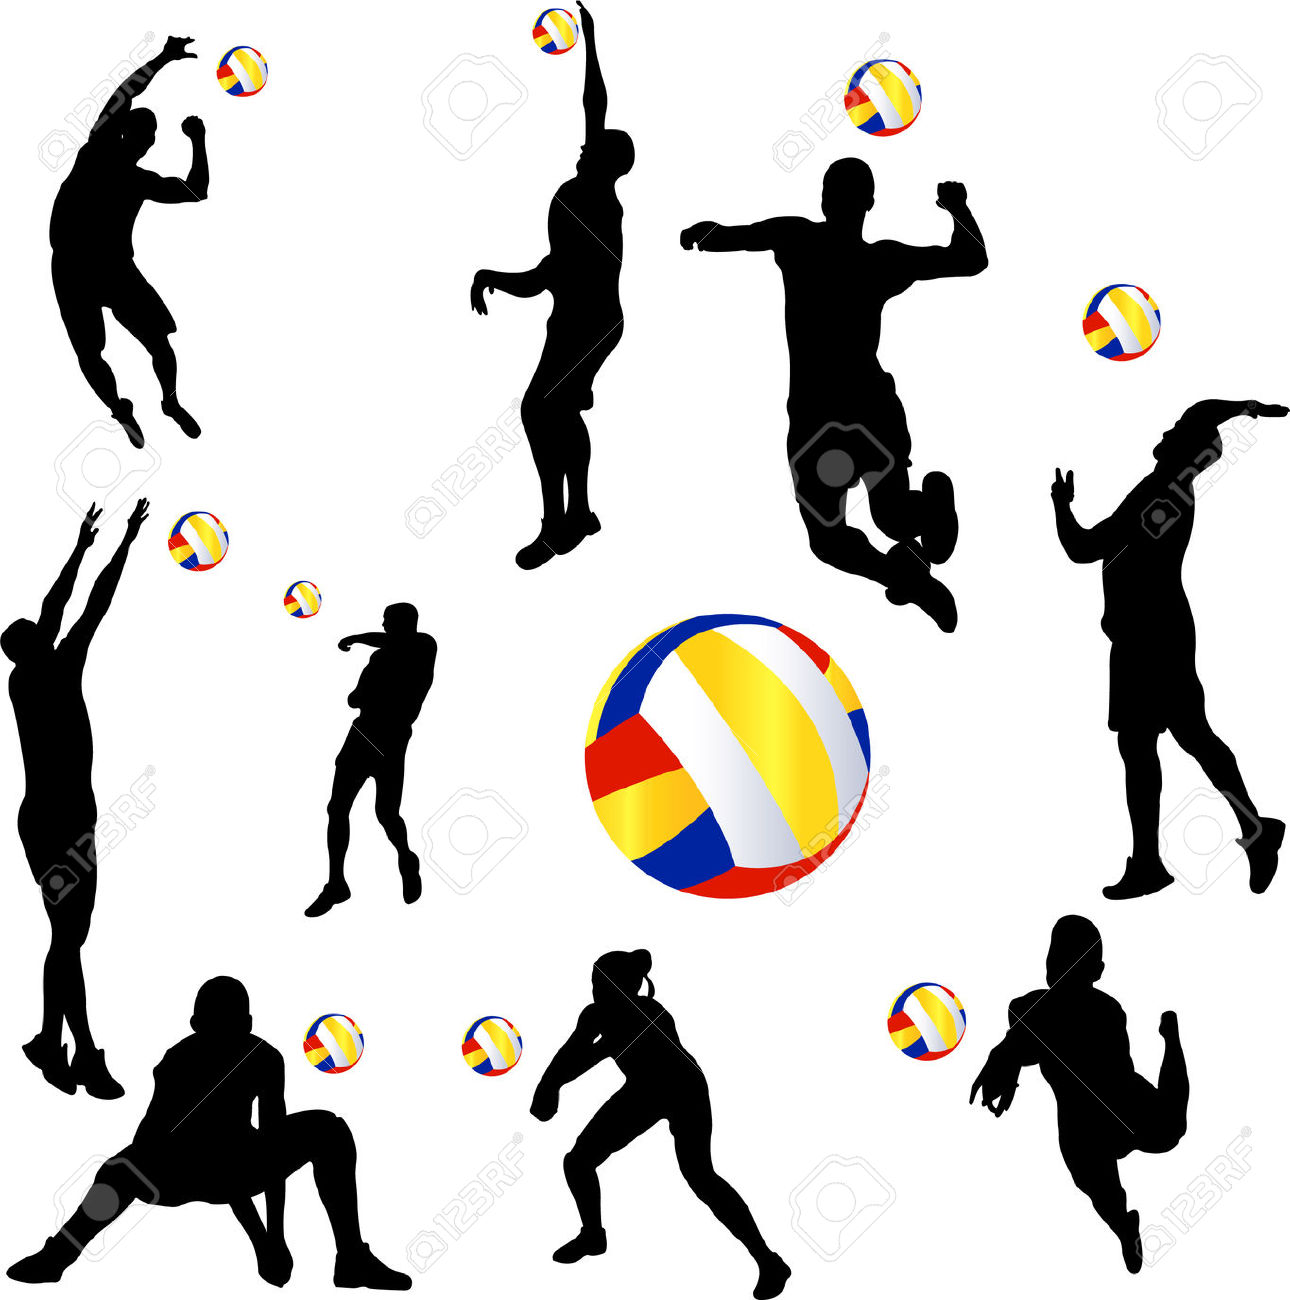 Volleyball players in action clipart picture Volleyball players in action clipart 4 » Clipart Station picture